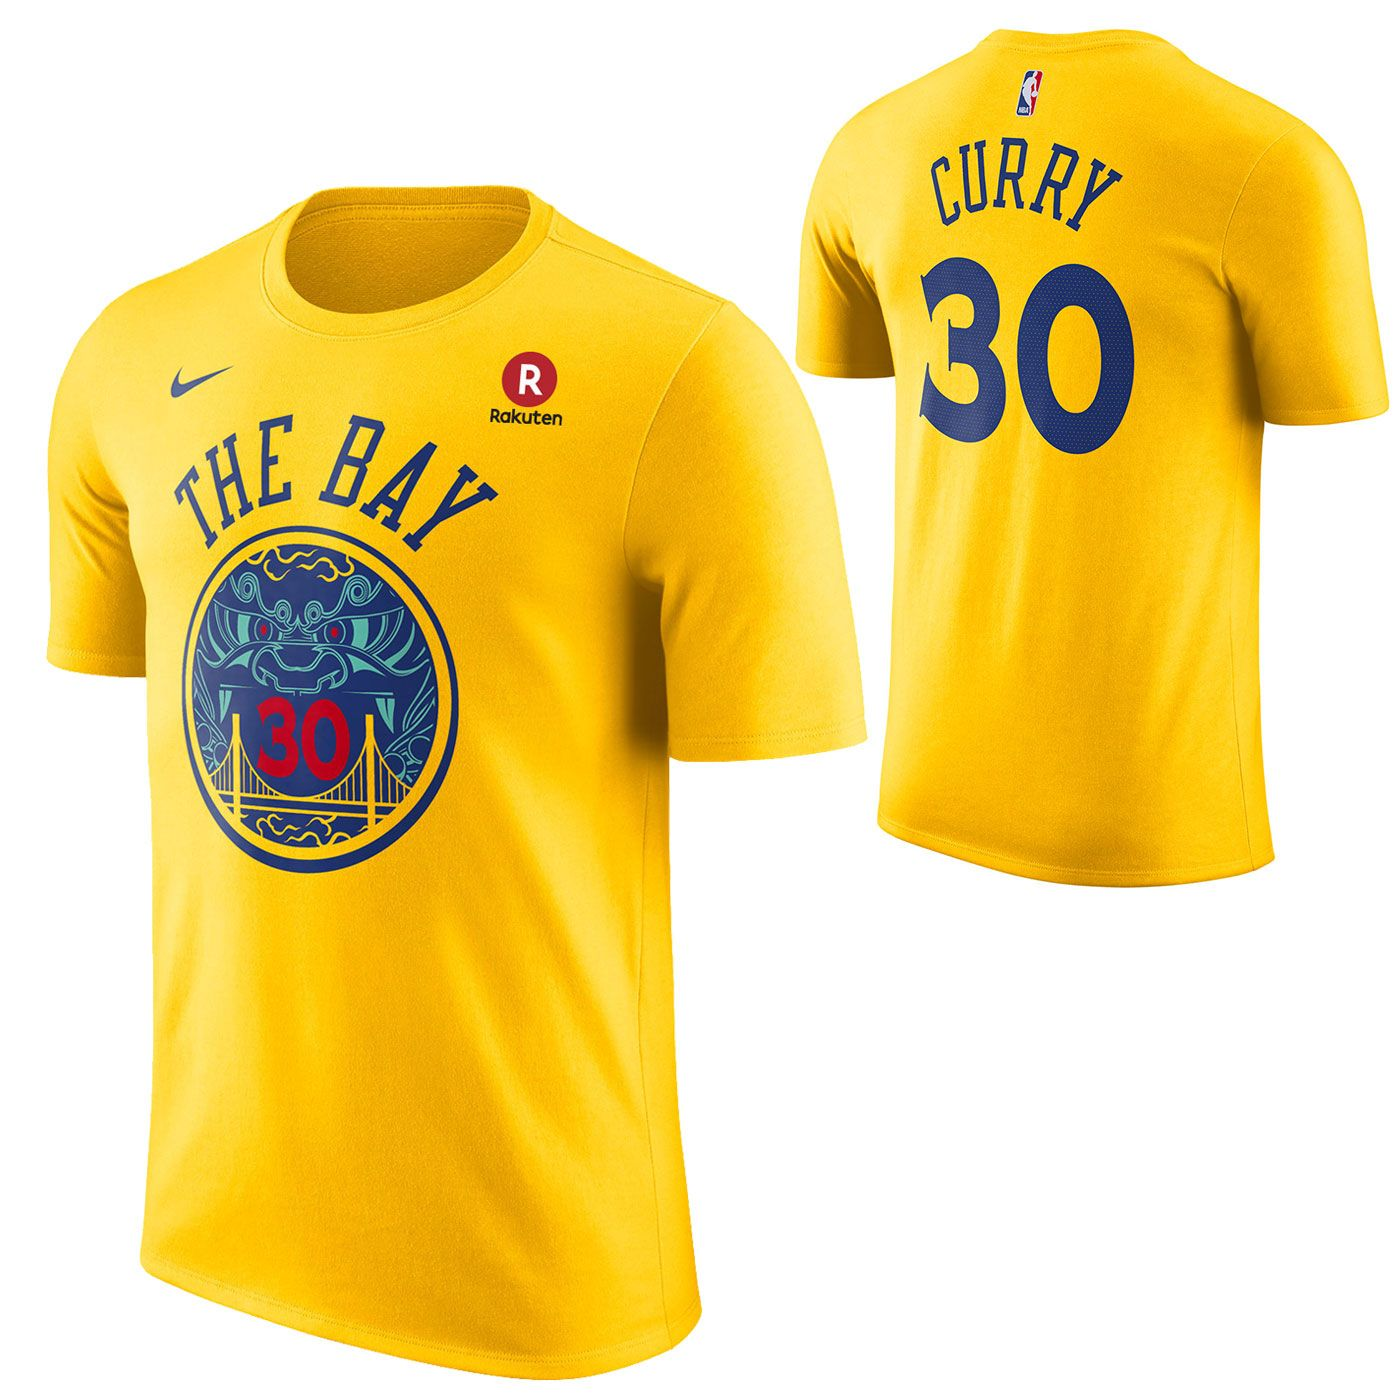 d0bfcb2c017d Golden State Warriors Nike Dri-FIT Men s City Edition Stephen Curry  30  Chinese Heritage Game Time Name   Number Tee - Gold